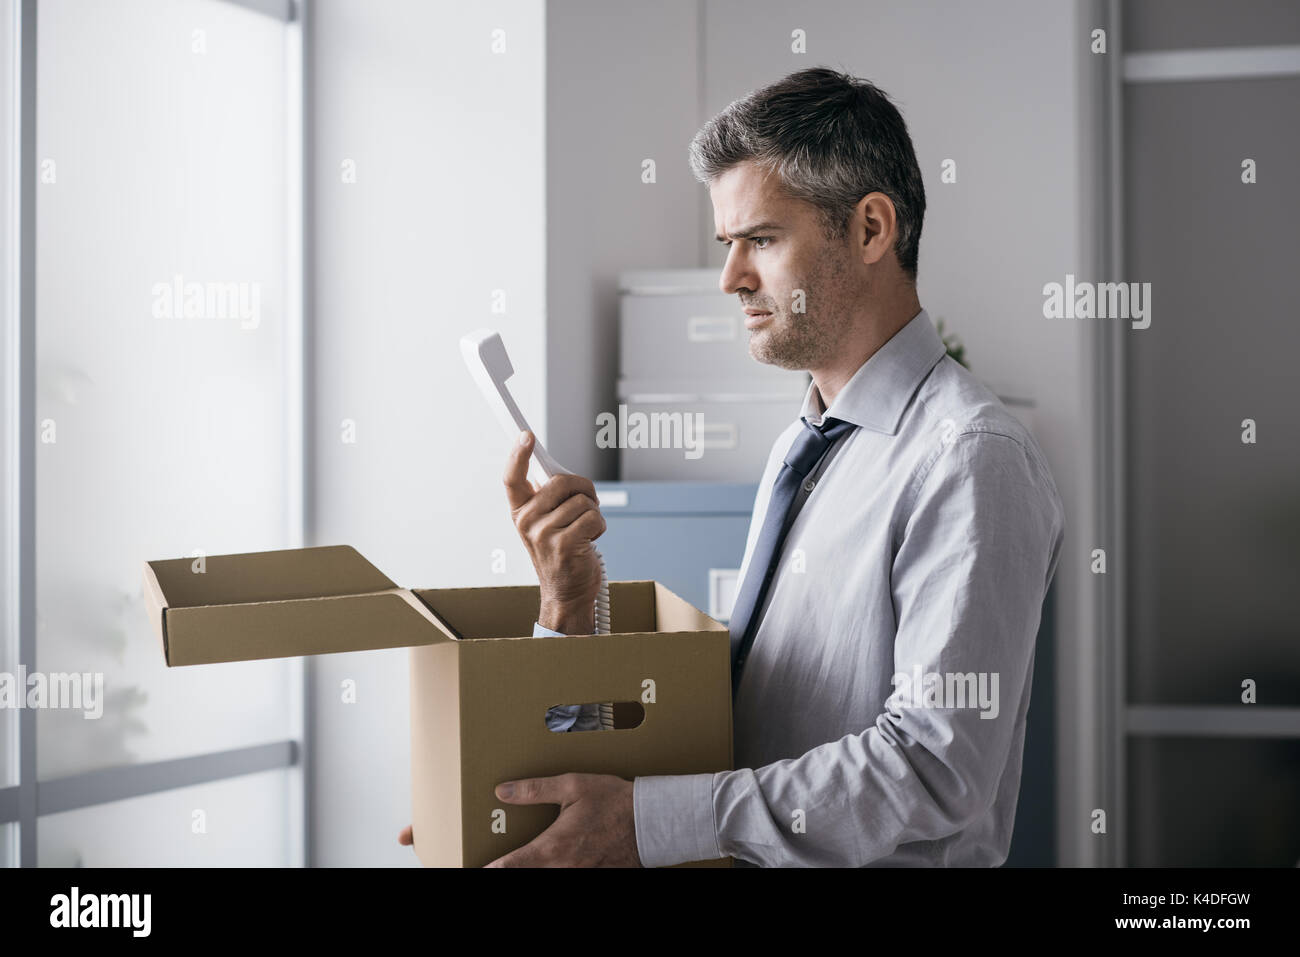 Shocked office worker receiving a surprise call inside a cardboard box, stressful job and stalking concept - Stock Image